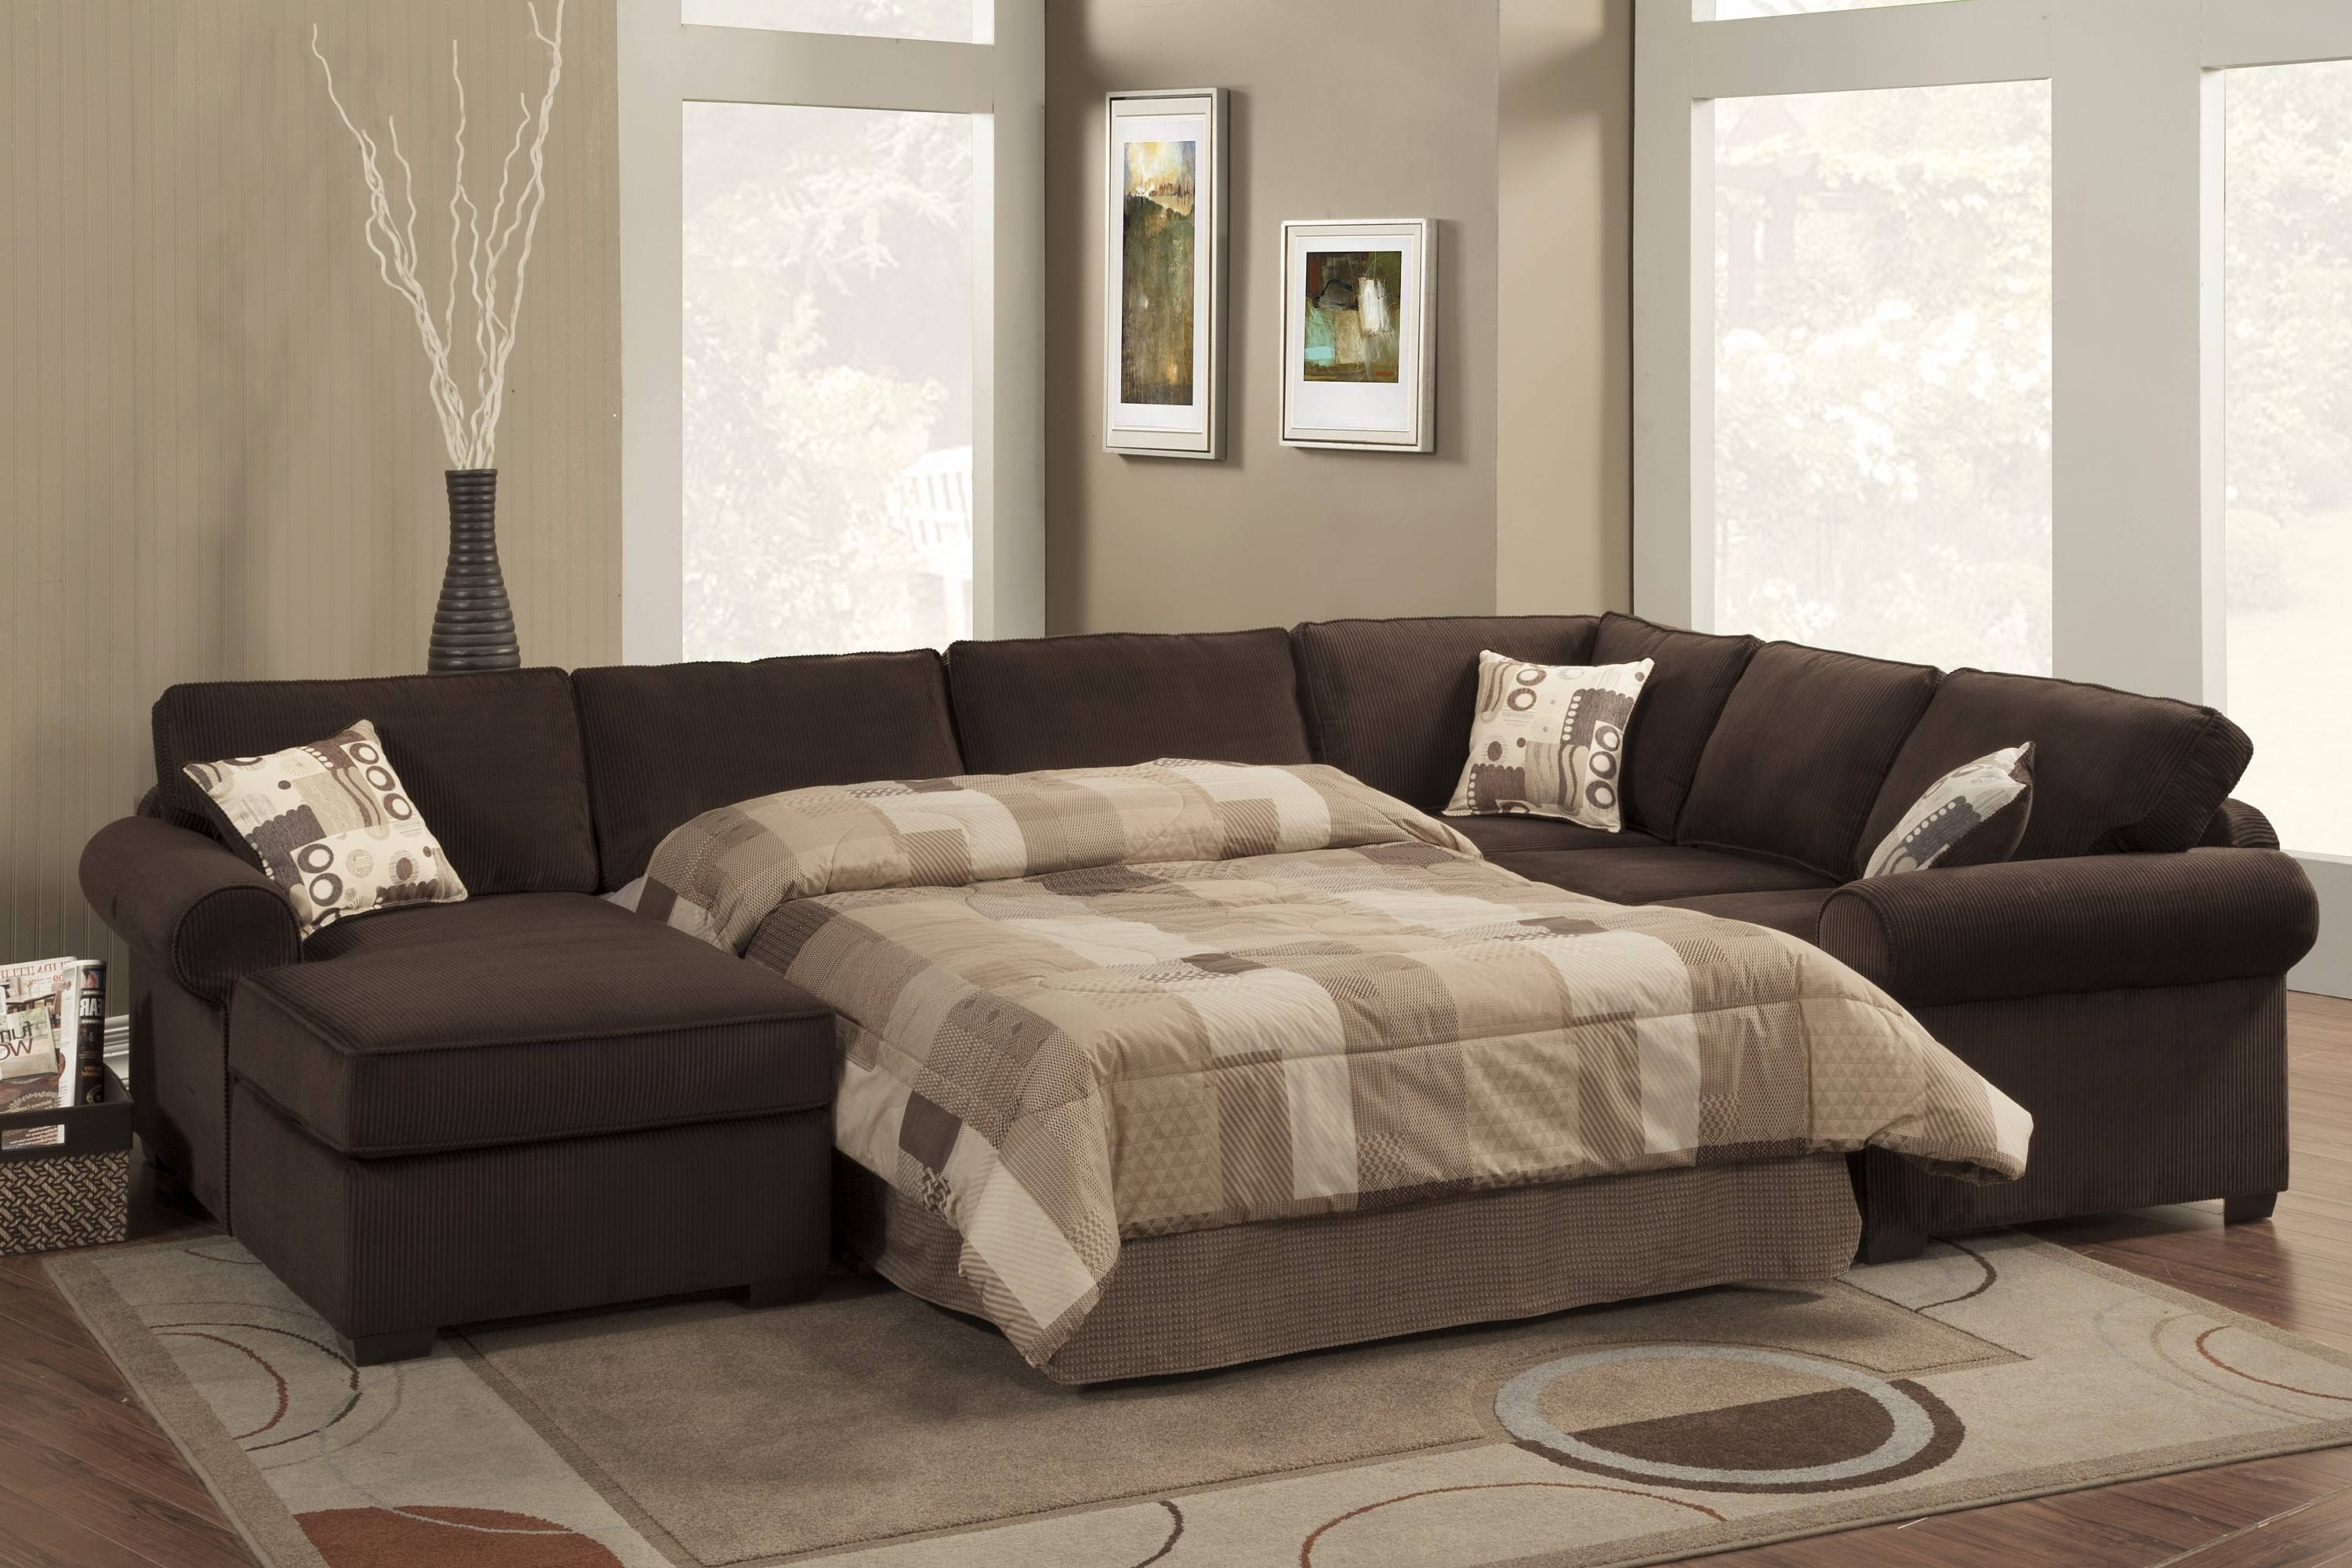 Cheap Sectional Sofas With Wide Sectional Couch With New Sectional For Trendy Sectional Sofas (View 5 of 20)